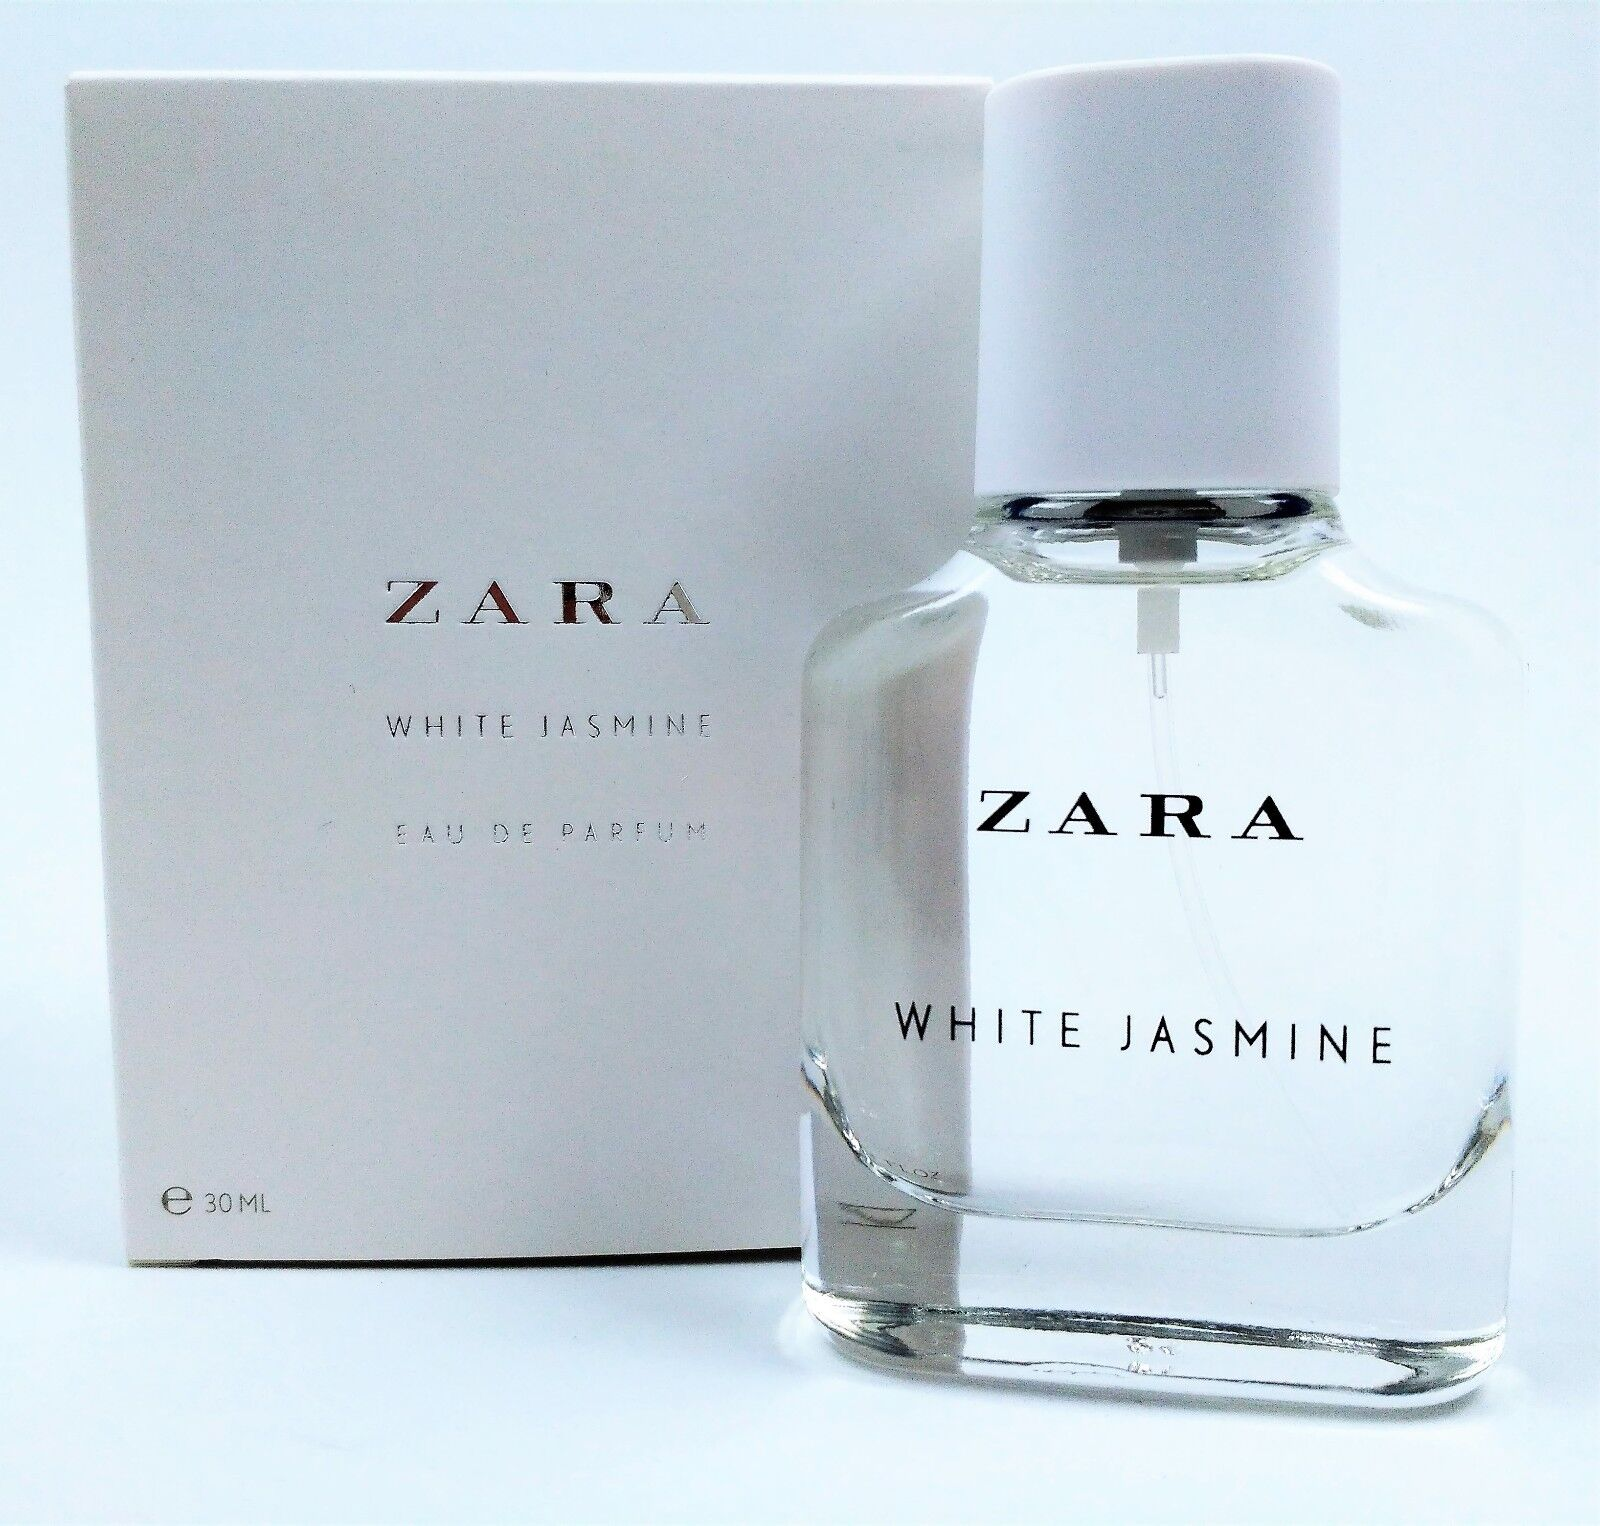 Zara White Jasmine For Woman Eau De Parfum Edp Fragrance Perfume